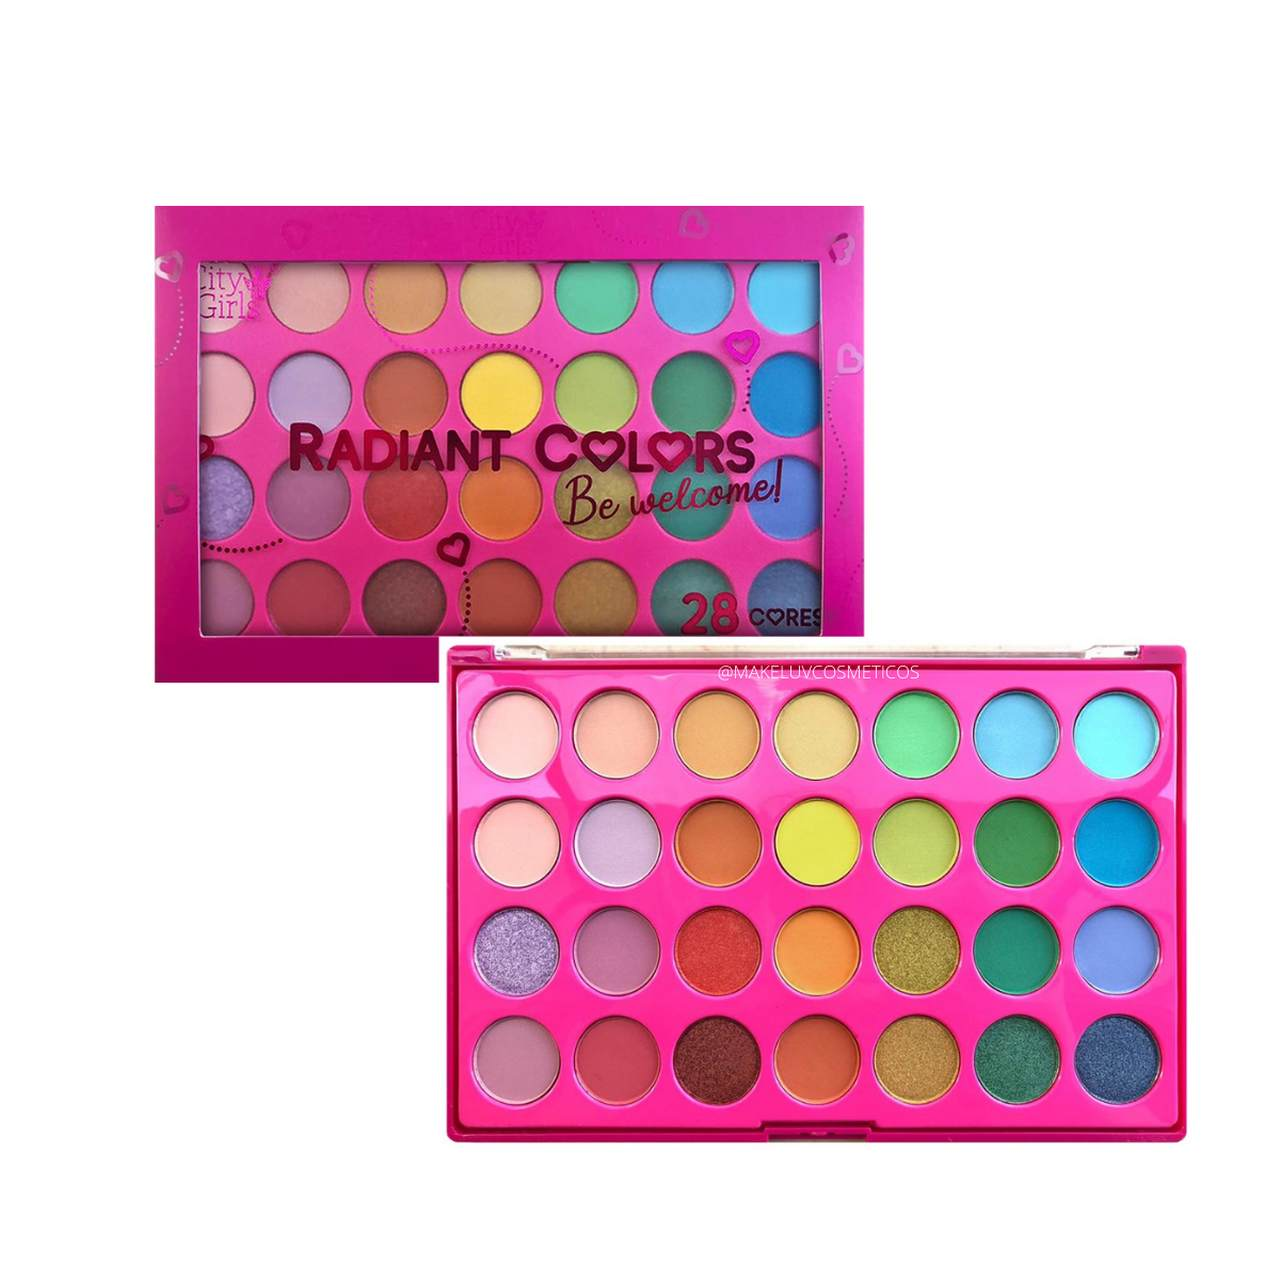 Paleta de Sombras City Girls Radiant Colors 28 cores